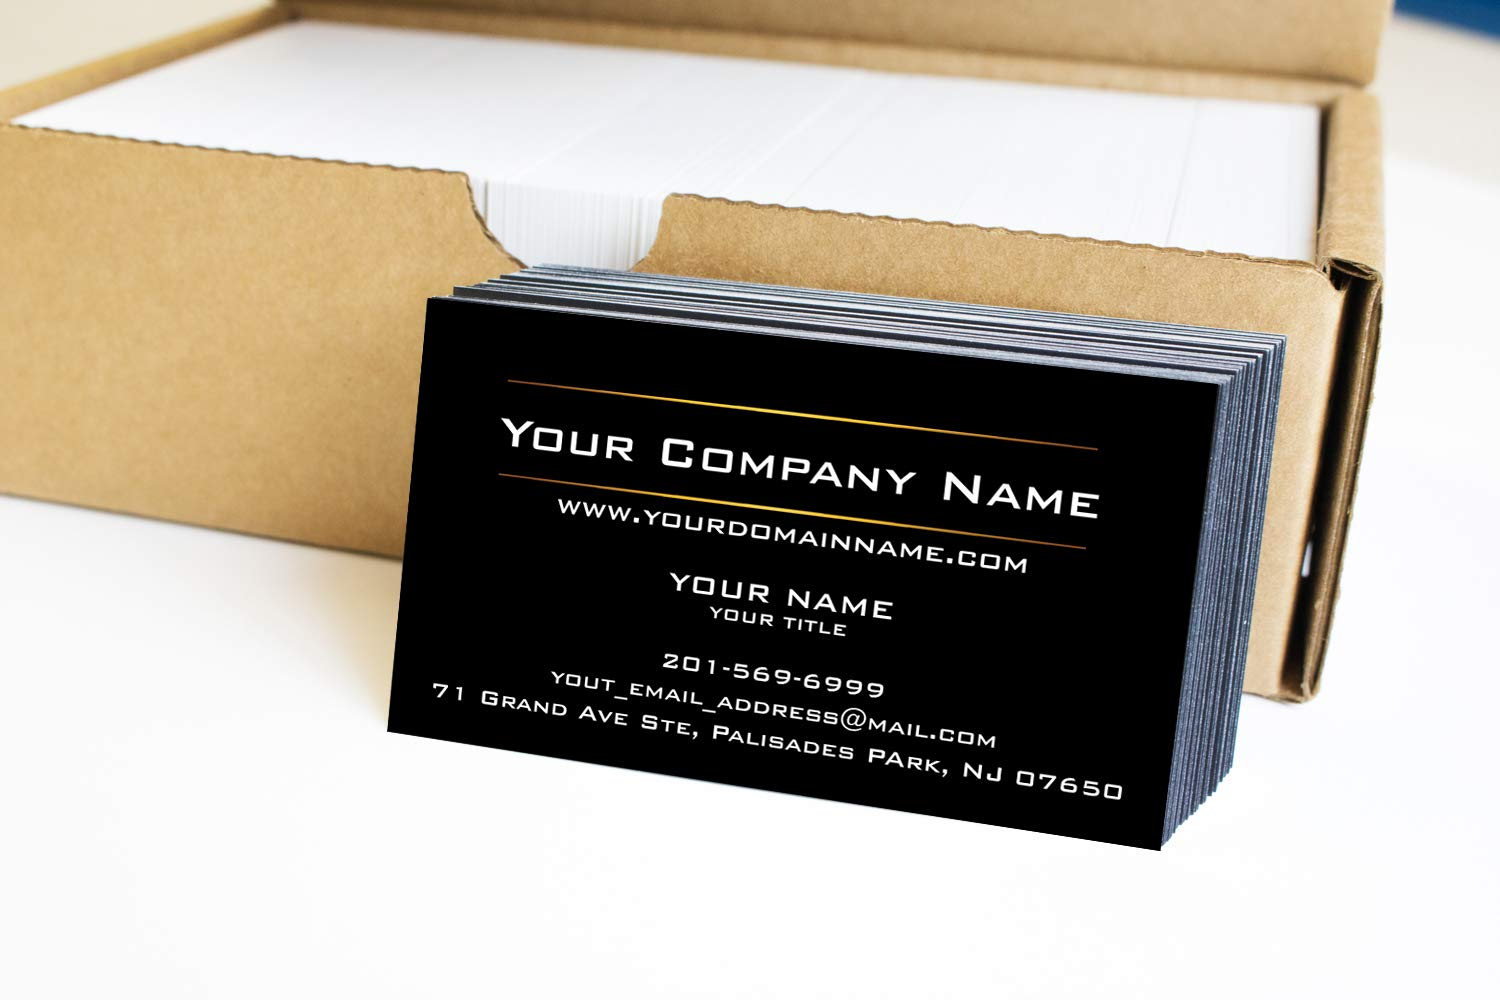 Simple Custom Premium Business Cards 500 Full color - Black business cards with Two Sunny lines design- Black front-White back (129 lbs. 350gsm-Thick paper),Offset Printing, Made in The USA